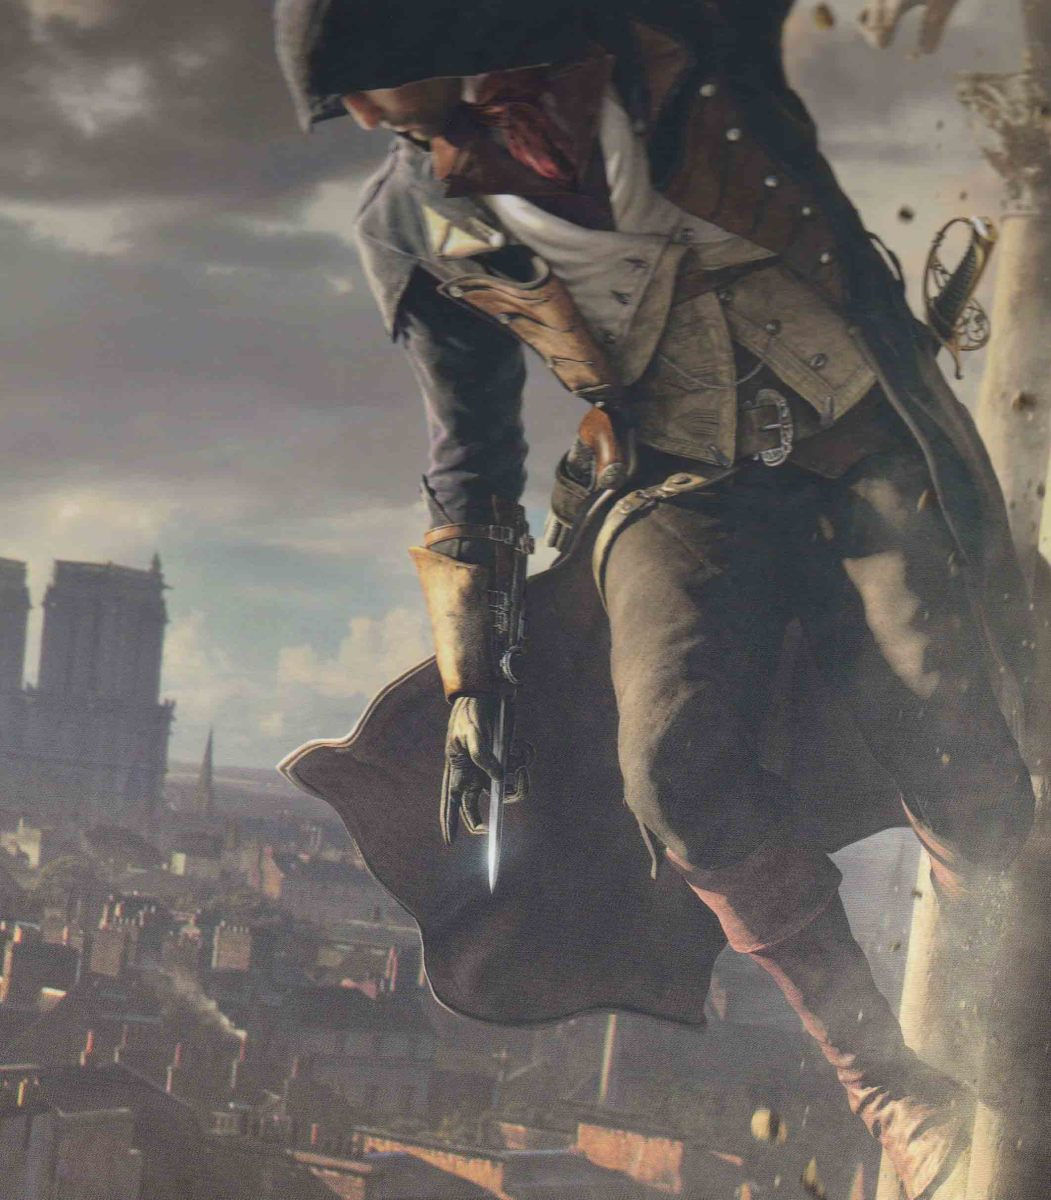 To fly like a gargoyle in the city of Paris is one a skill that Arno cannot unlock...... yet